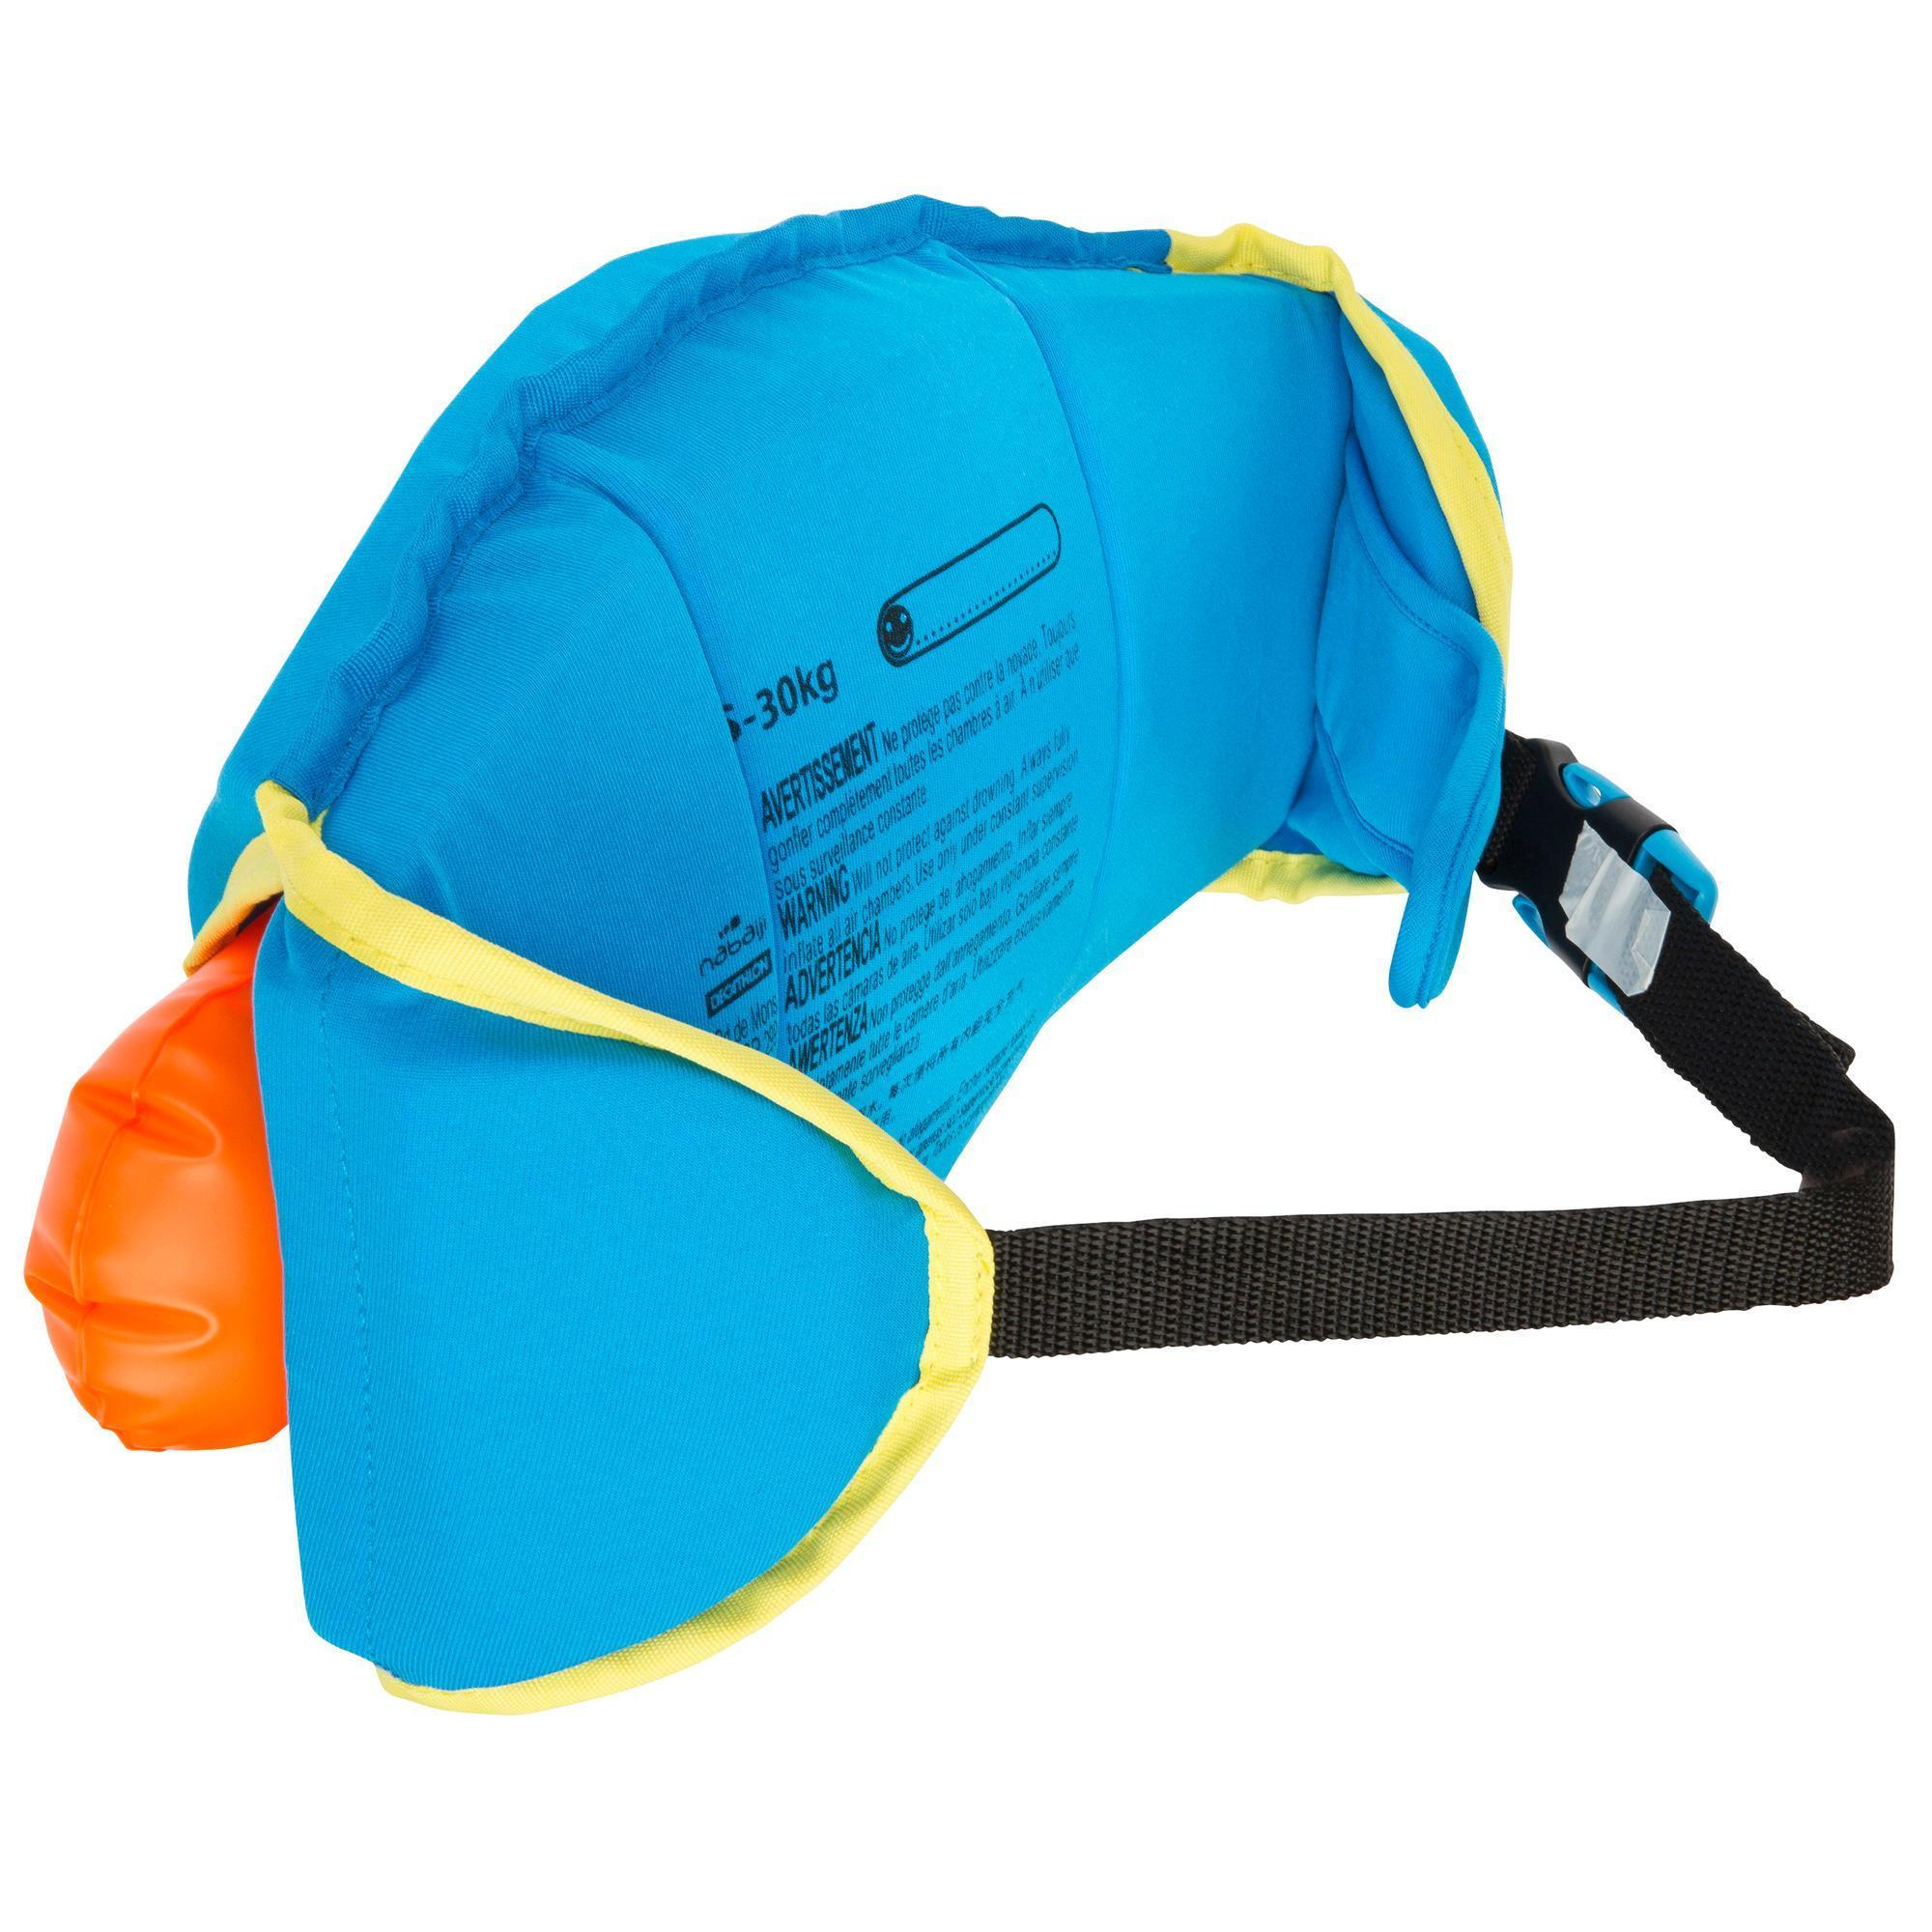 Boys swimming jammers | Buy Spy camera and audio bug Jammer with Li-ion battery Jammer Wireless Video, price $144